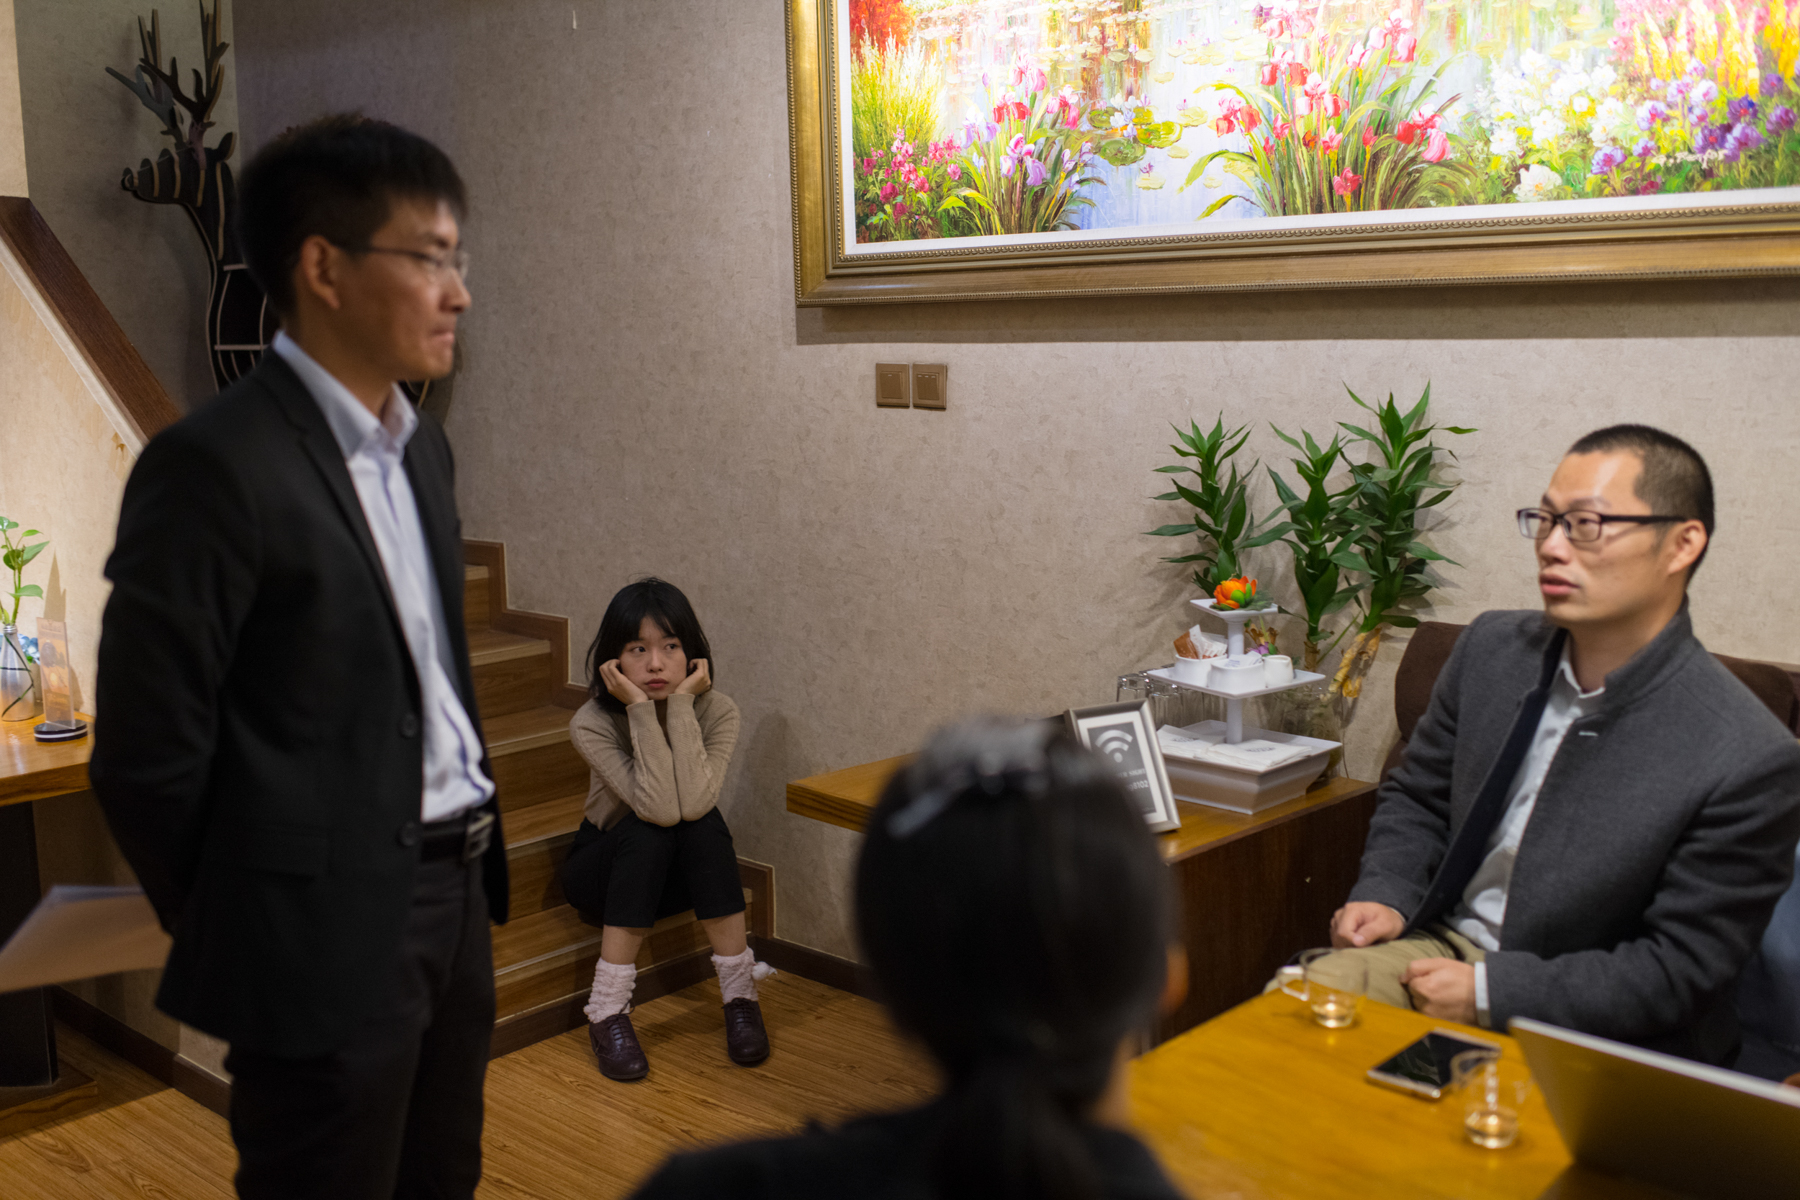 "Zhou, Xu (not pictured), and their lawyers meet at a cafe before a pretrial evidence exchange for the claim Zhu filed against them, October 25. The team expects both cases (the one Zhu filed against Zhou and Xu, and the one Zhou filed against Zhu) will take a long time to resolve. Zhou says, ""If we win, more women would feel encouraged to stand up and defend themselves."""